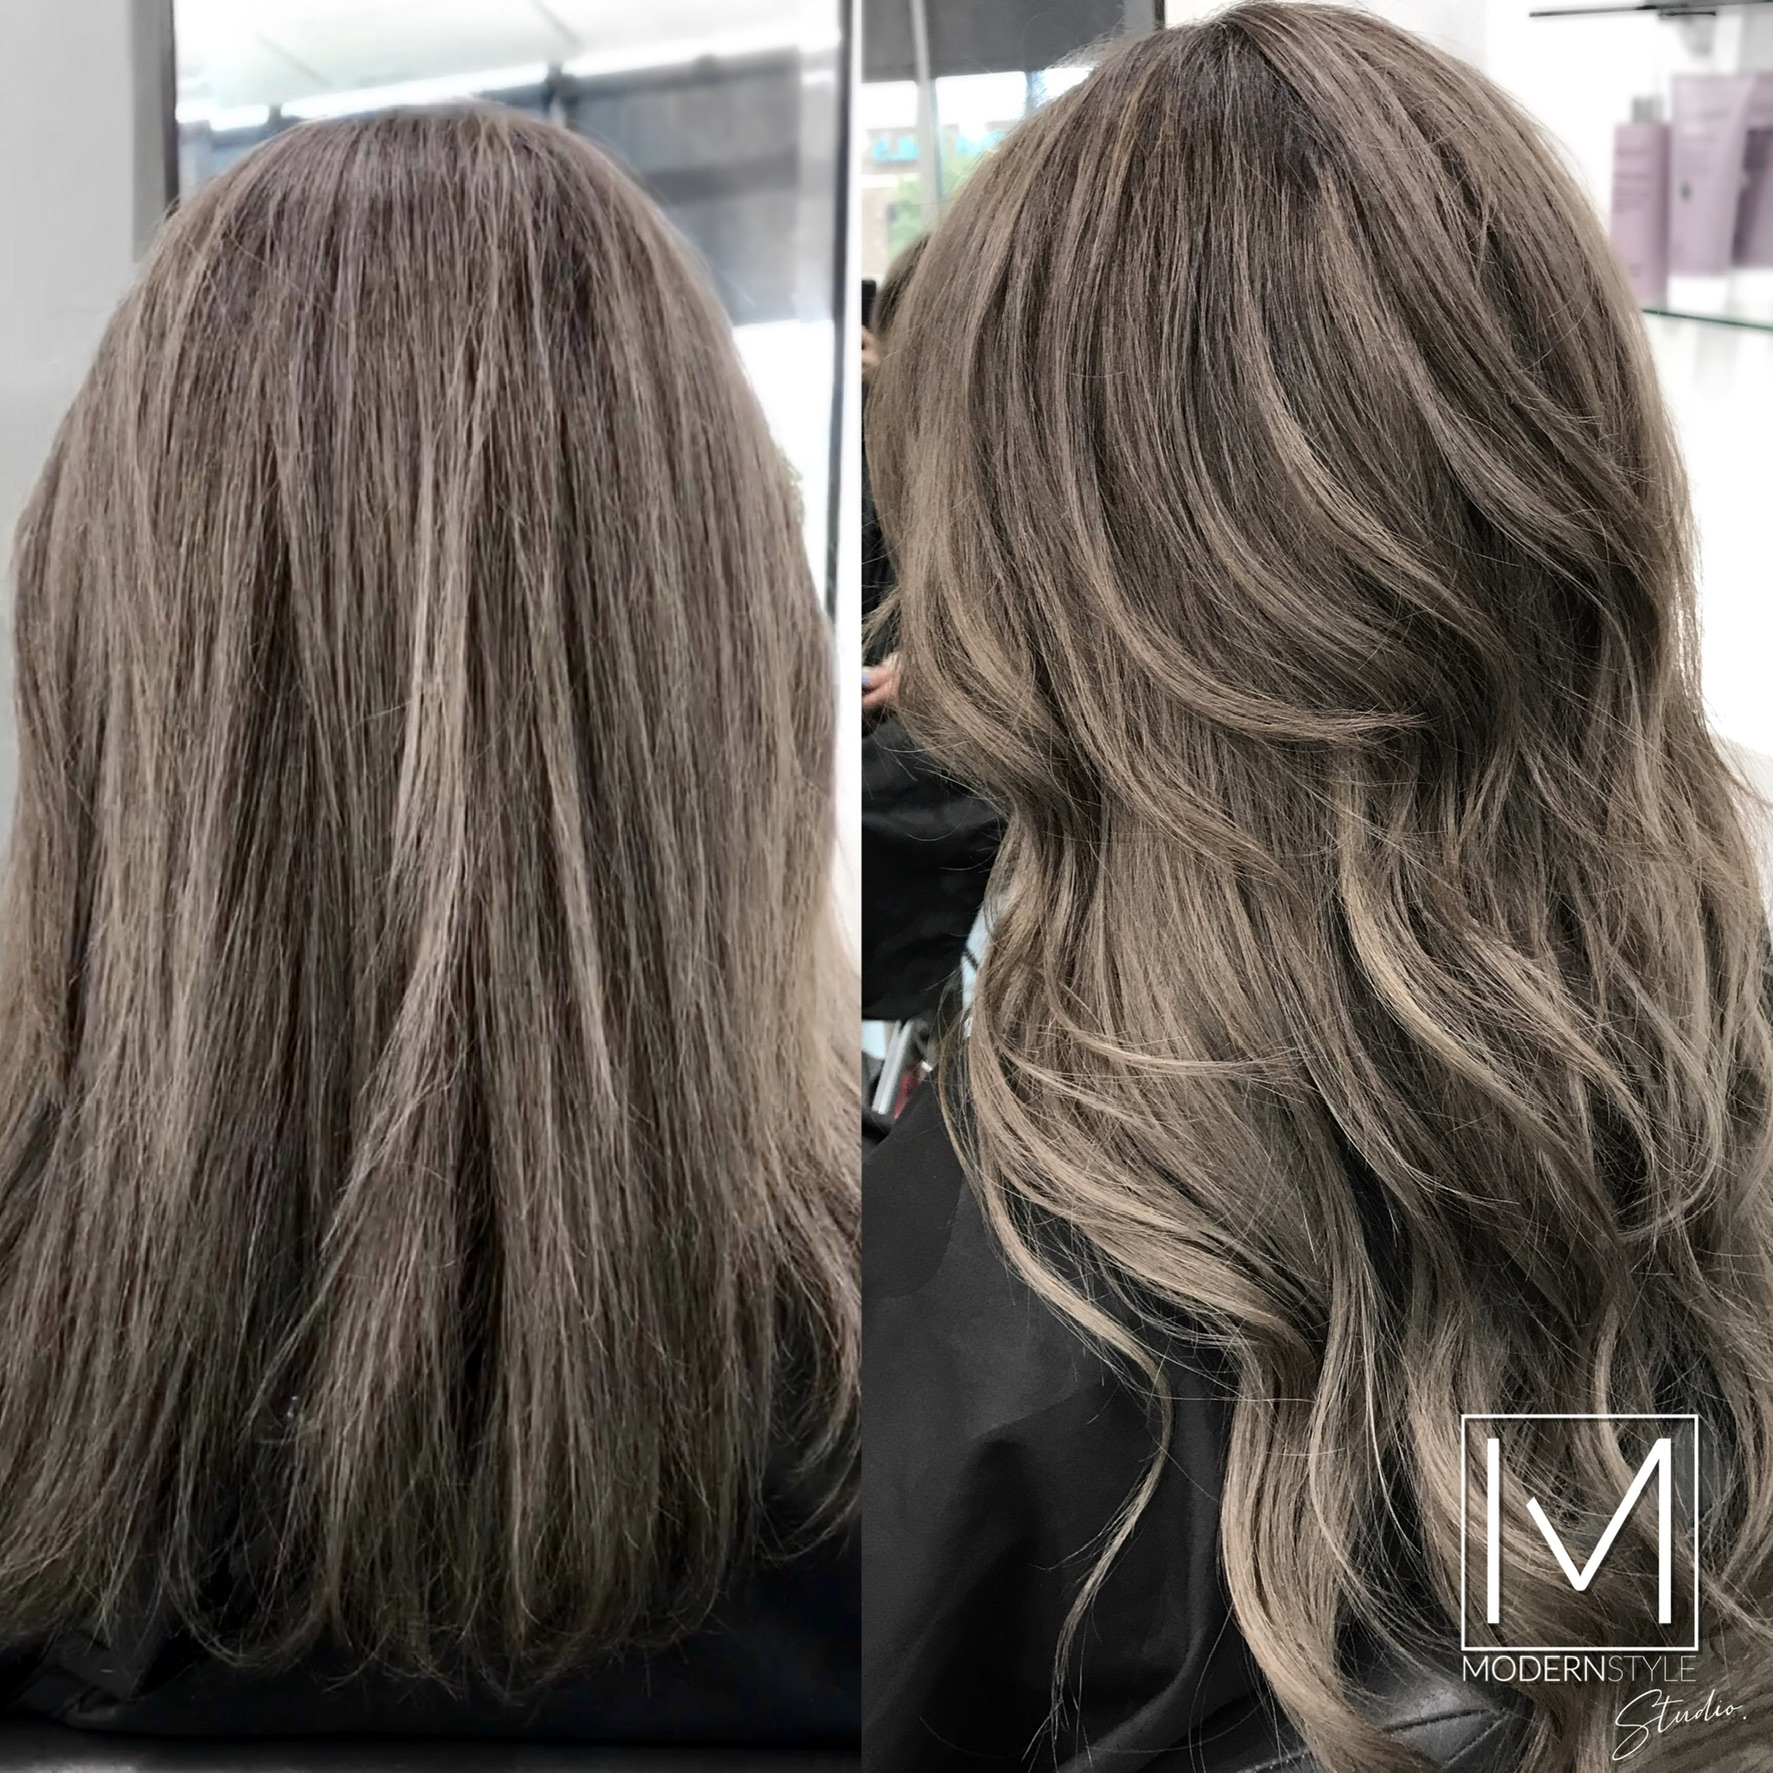 Best hair extensions near me, hair extensions Charlotte, hand tied extensions, remy hair, hair extensions specialist Charlotte